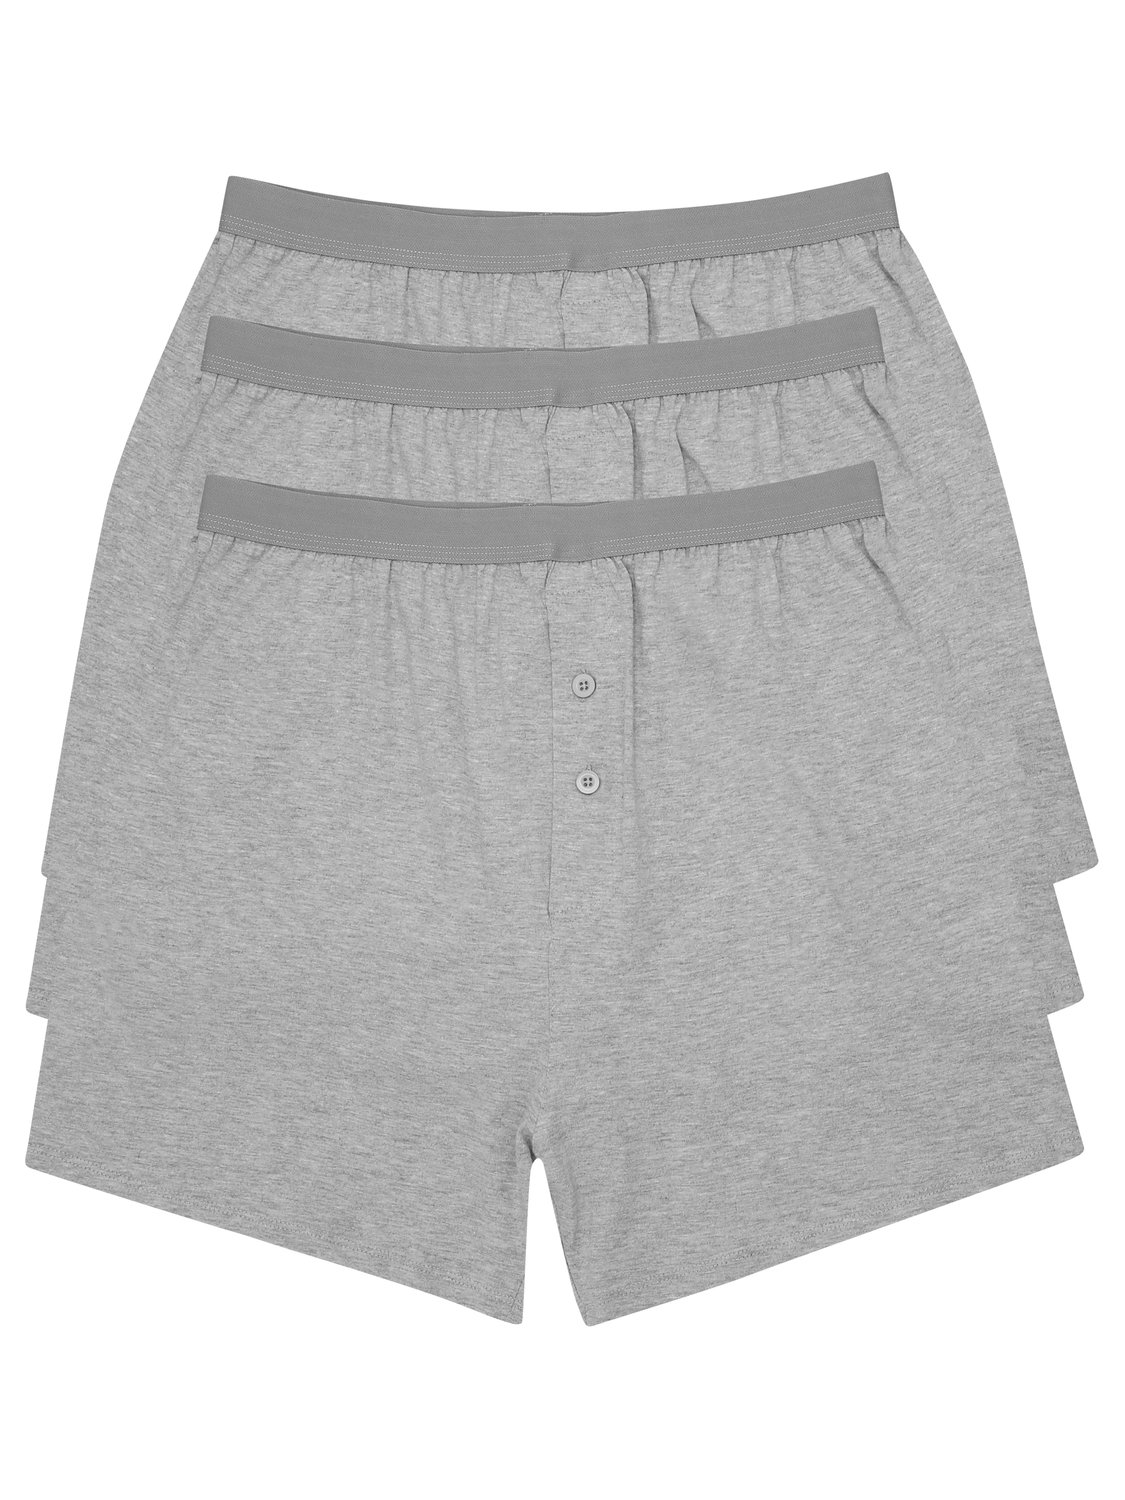 Mens plain boxer shorts cotton jersey boxers three pack  - Grey